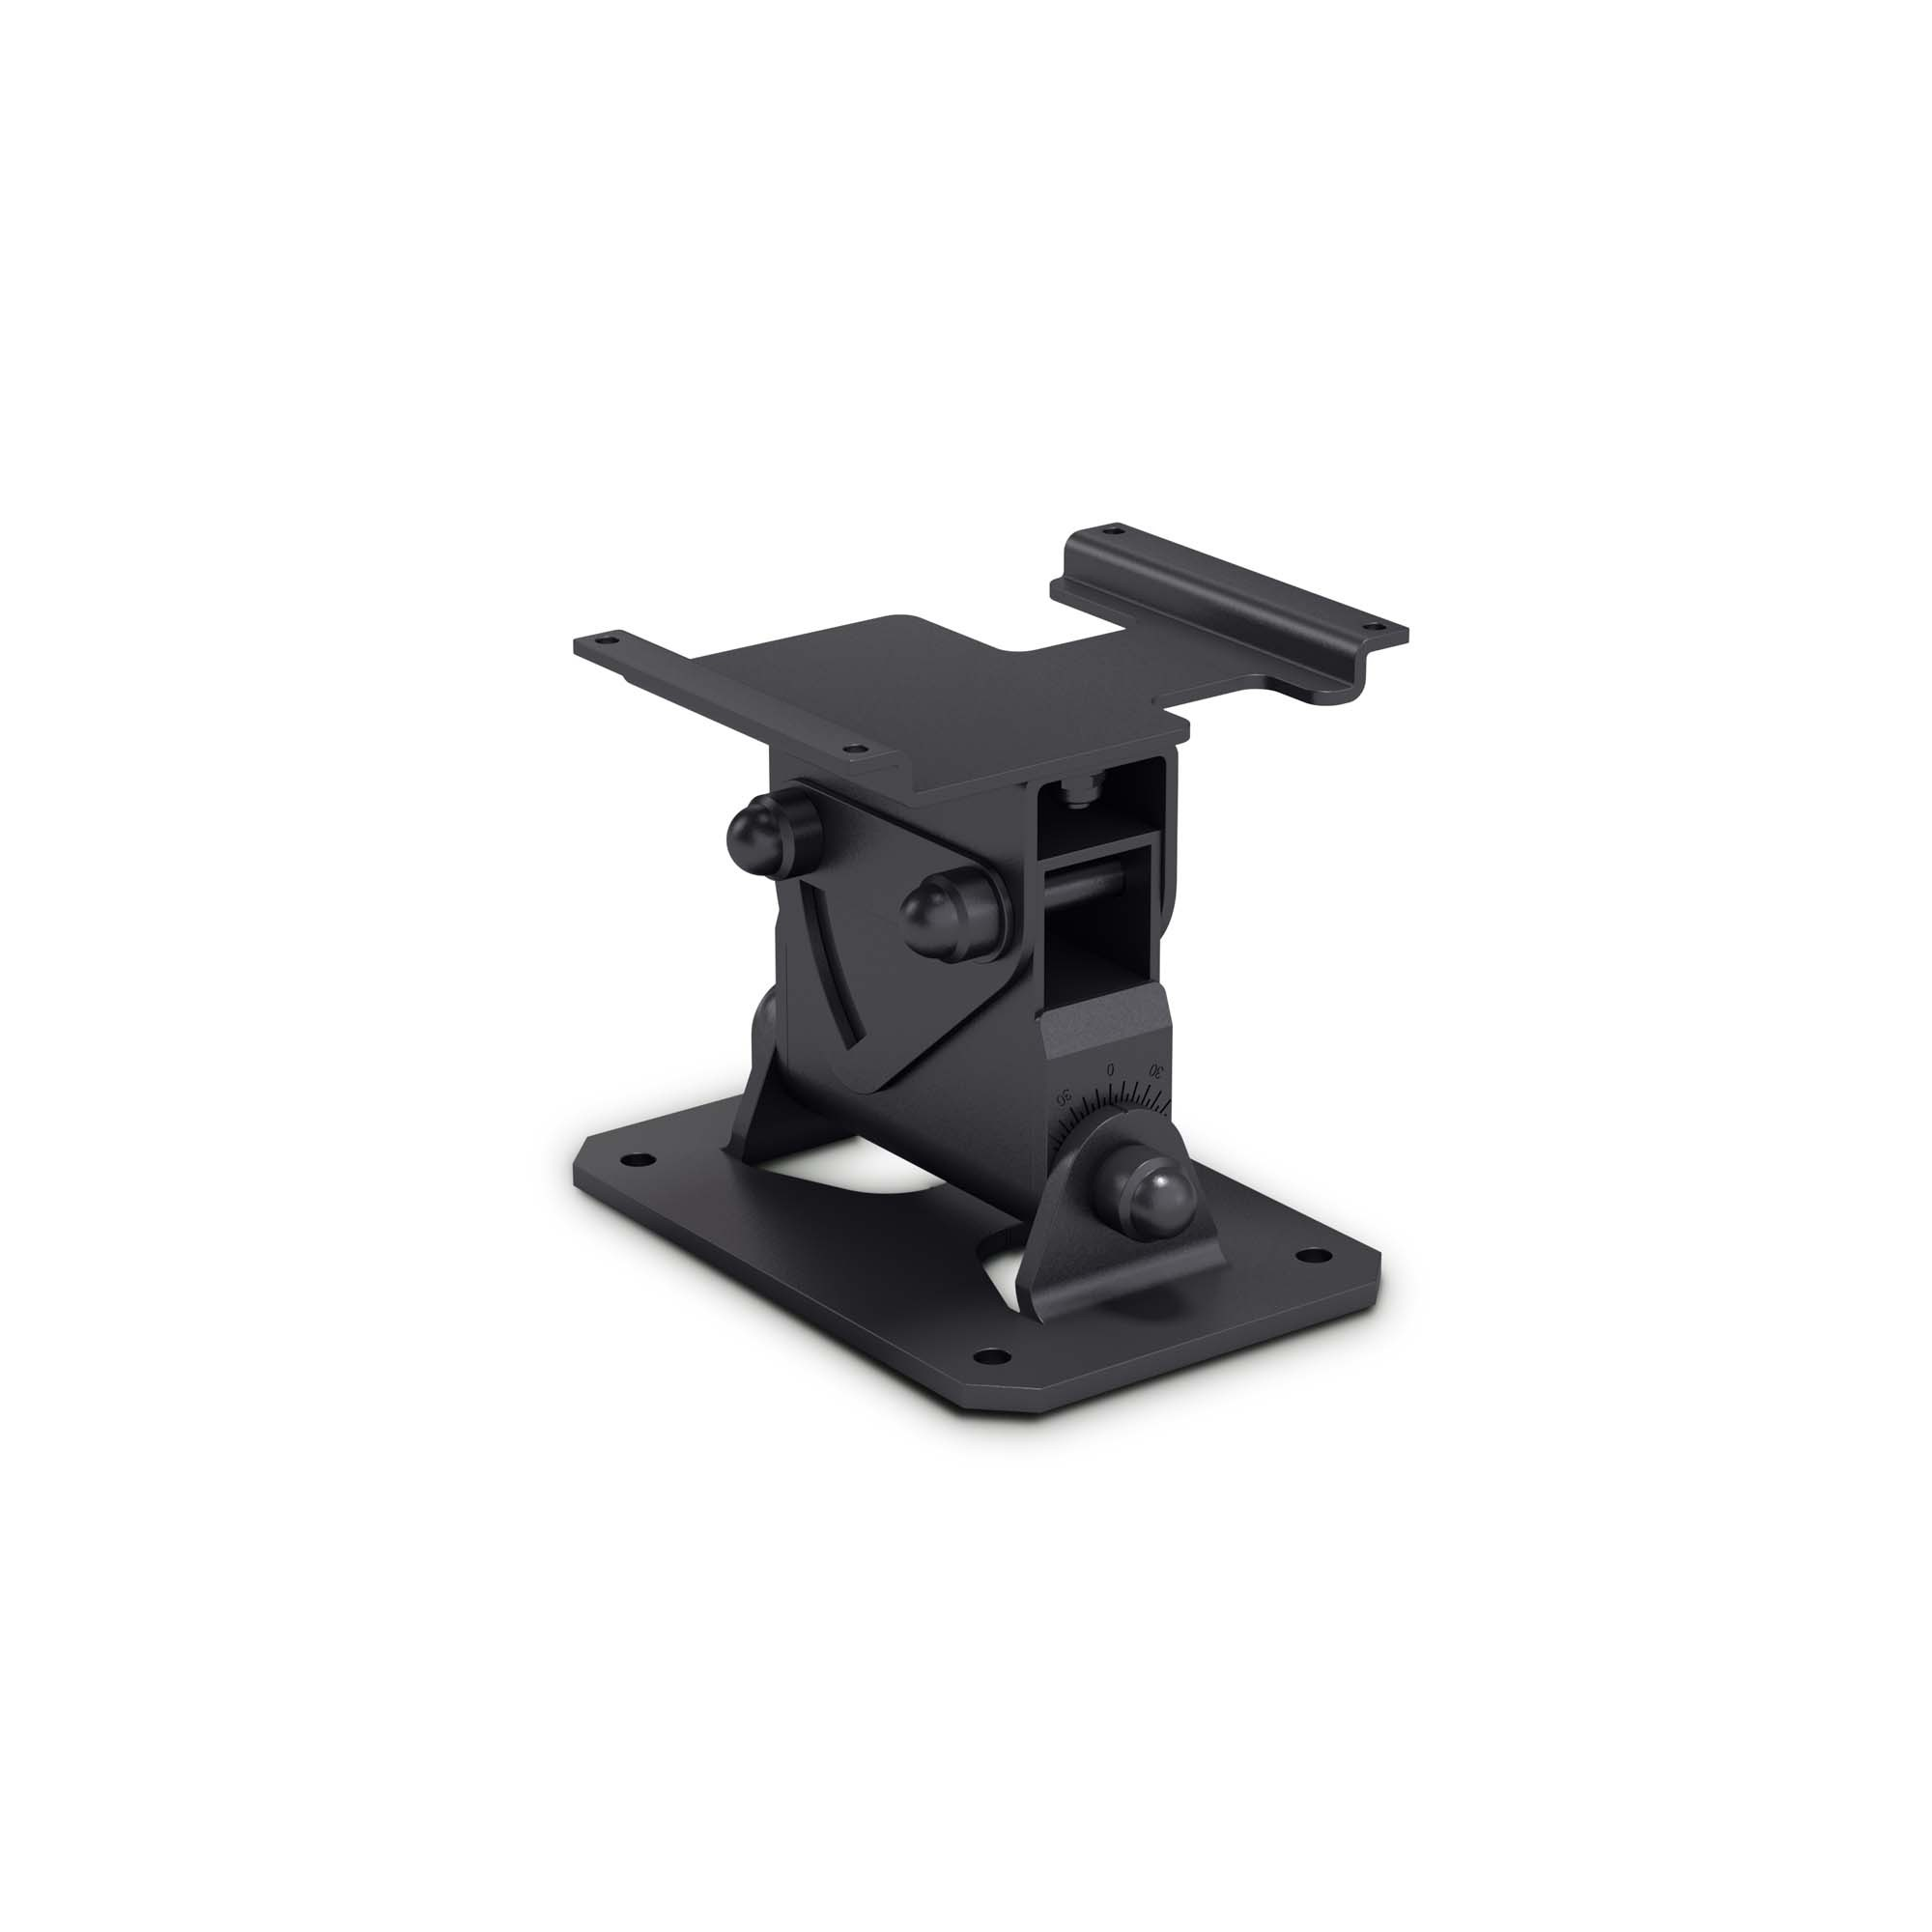 STINGER 8 A G3 WMB 1 Tilt & Swivel Wall Mount for Stinger® 8 A G3 Models